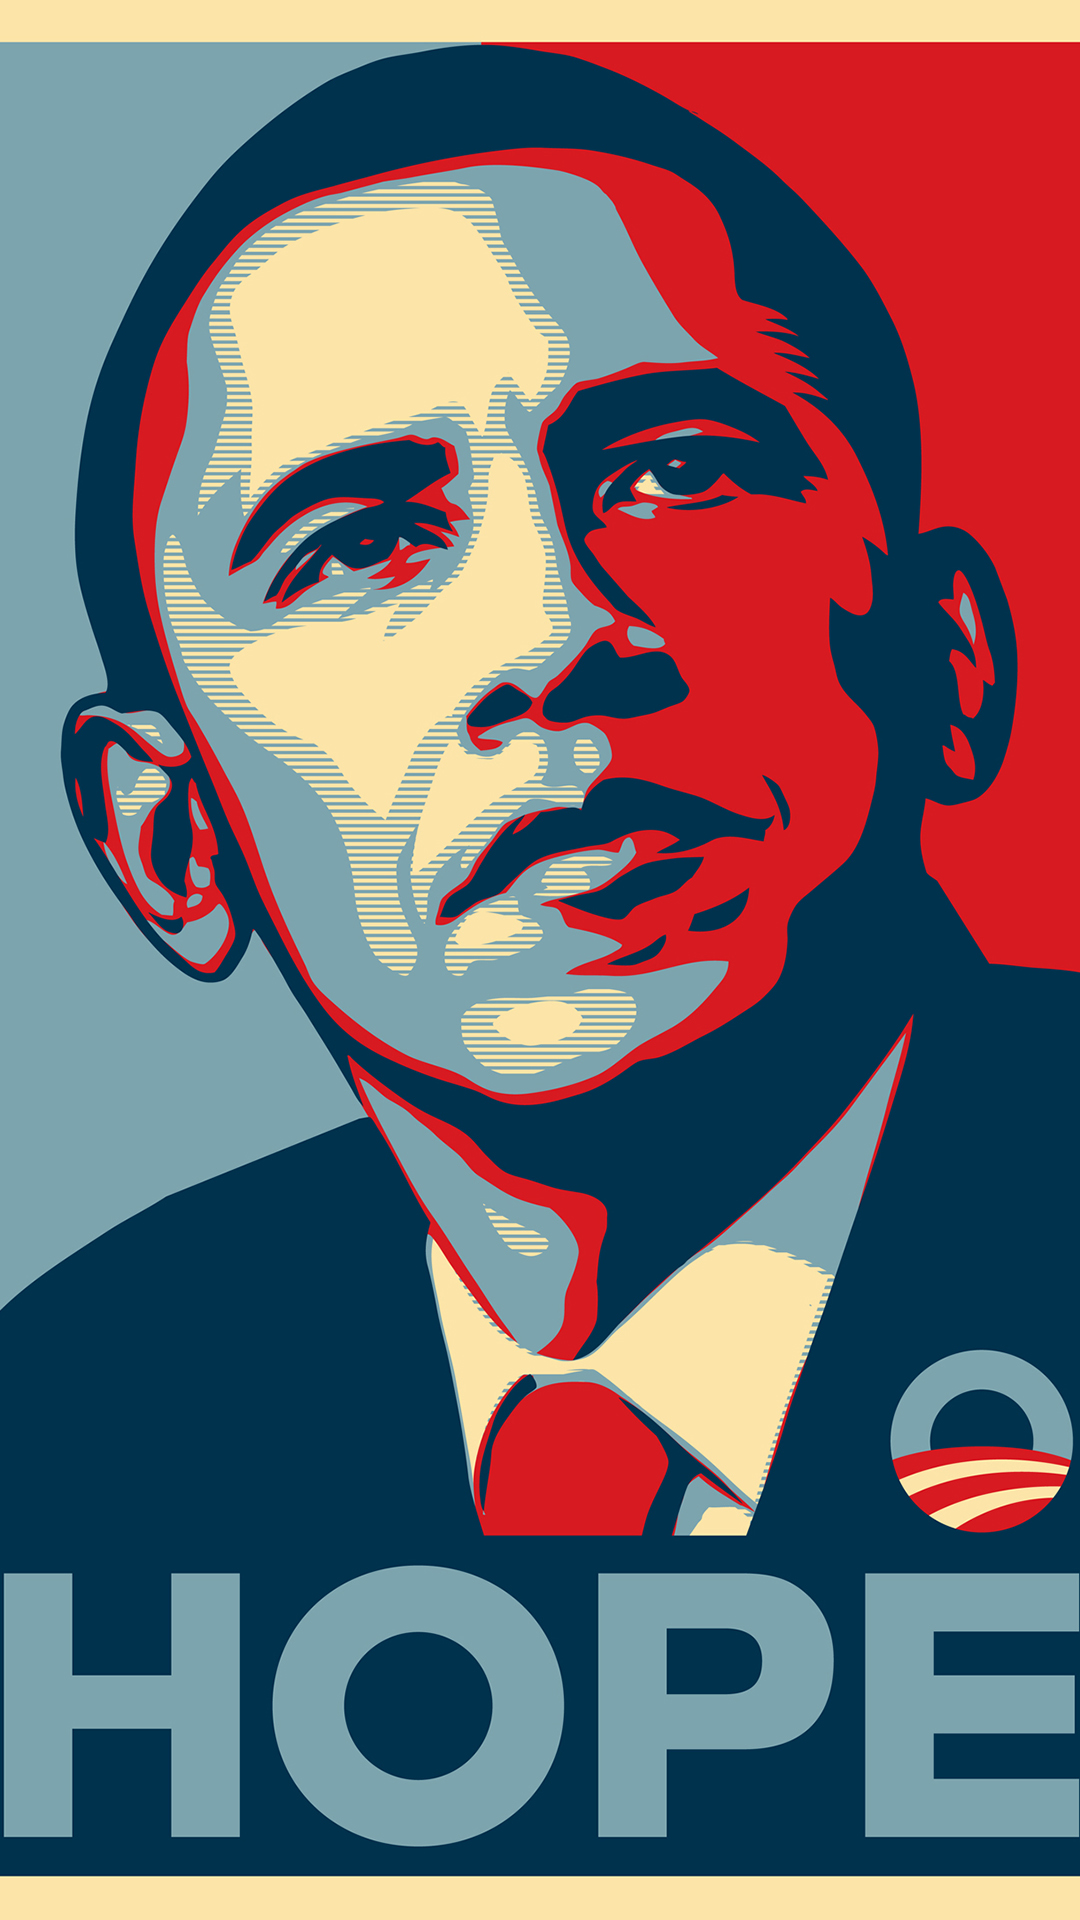 Obama Hope htc one wallpaper